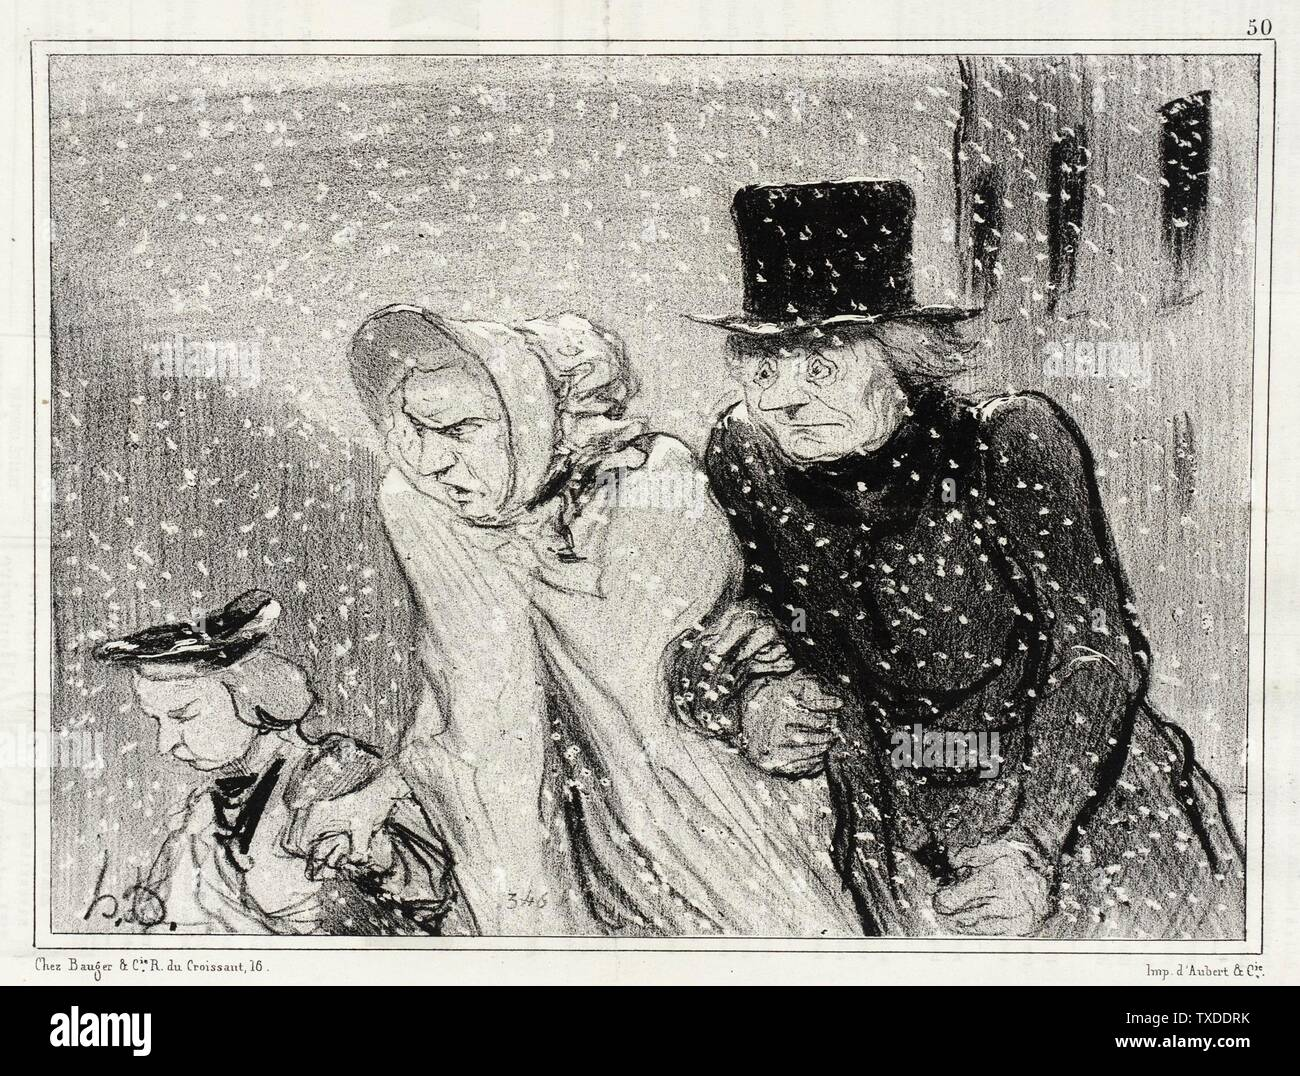 """""""Tu m'embêtes, mon épouse!...v'là une heure...; English:  France, 1843 Series: Types Parisiens Periodical: Le Charivari, 12 January 1843 Prints; lithographs Lithograph Sheet: 7 3/4 x 9 1/16 in. (19.69 x 23.02 cm) Gift of Mrs. Florence Victor from The David and Florence Victor Collection (M.91.82.105) Prints and Drawings; 1843date QS:P571,+1843-00-00T00:00:00Z/9; """" Stock Photo"""